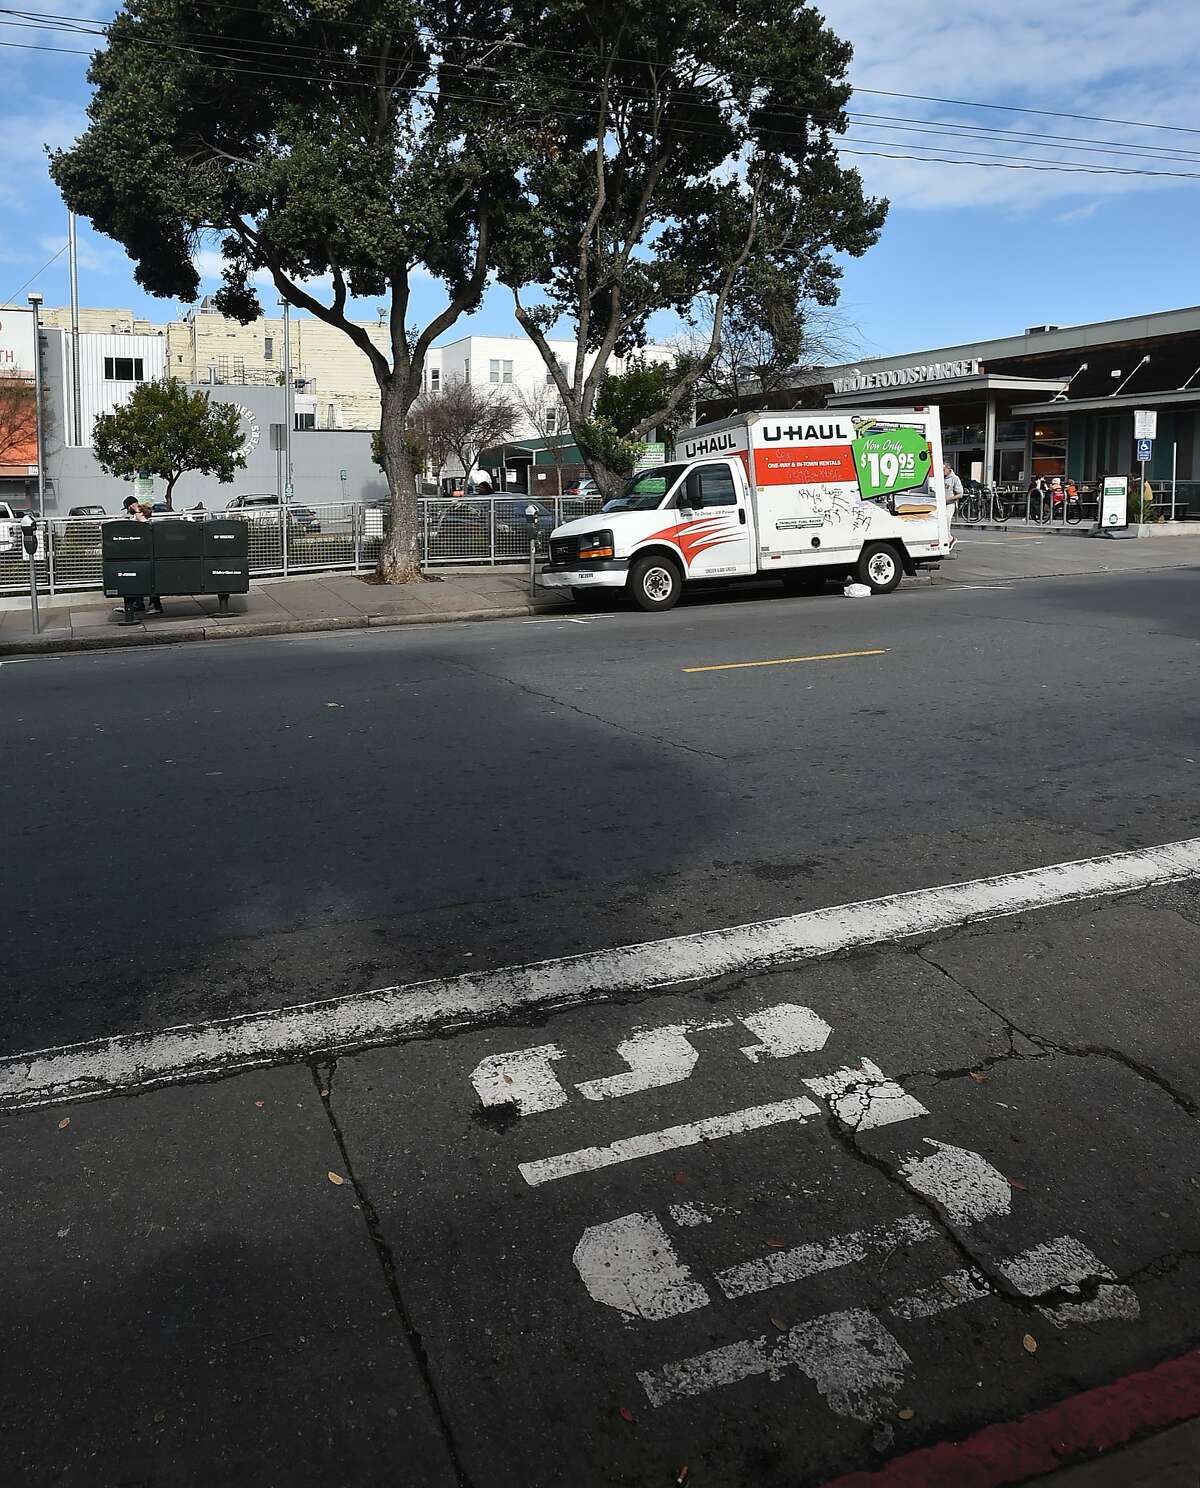 An empty parking space is seen (L) where a stolen van containing two fugitives was parked near a Whole Foods store at the corner of Haight and Stanyan in San Francisco on Jan. 30, 2016. The two men escaped from an Orange County prison and fled before being arrested in San Francisco.